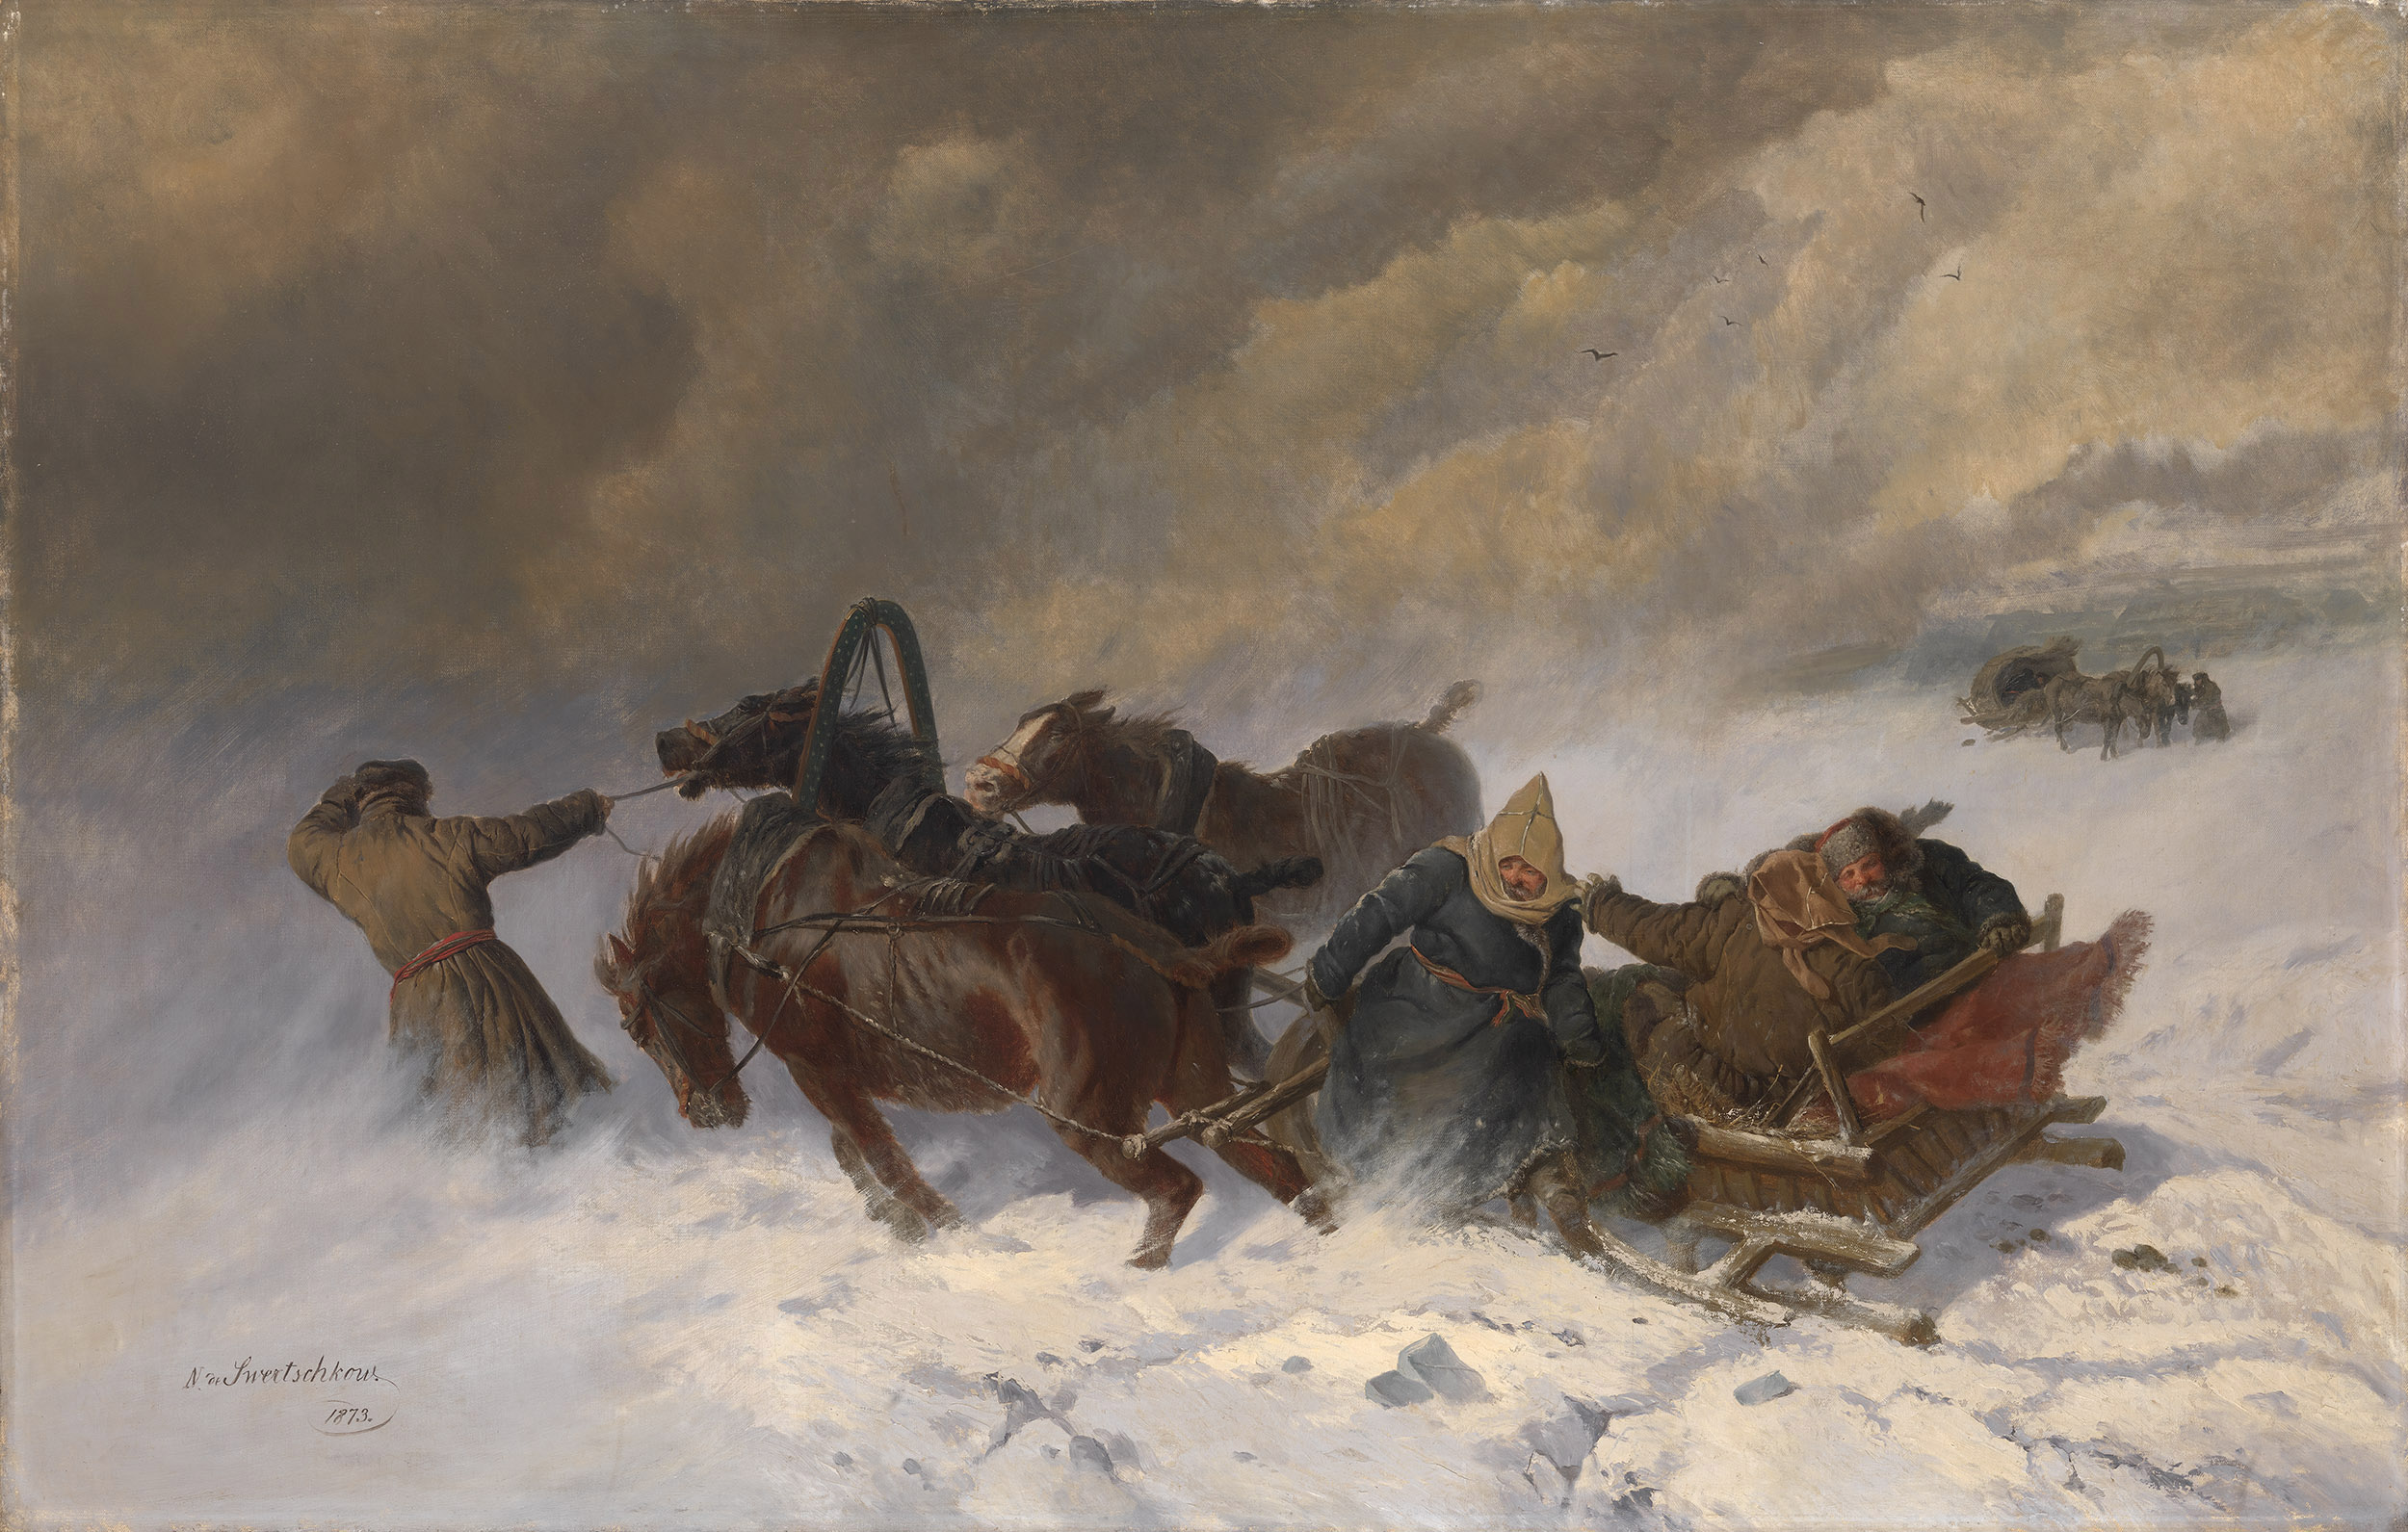 SVERCHKOV, NIKOLAI Into the Blizzard